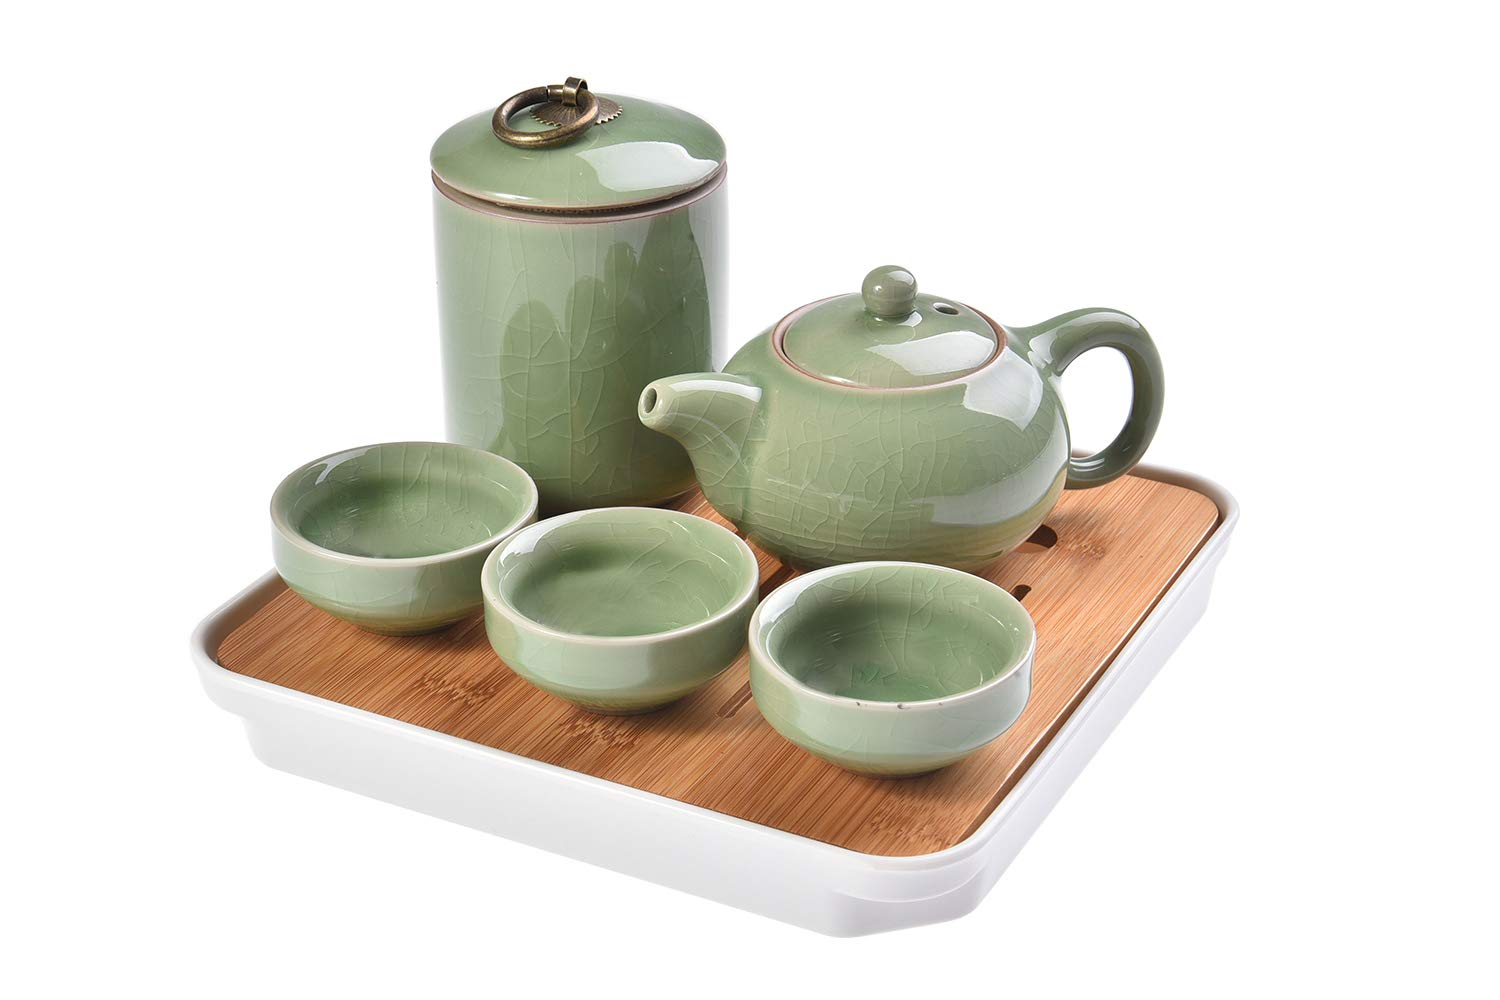 Quantum Abacus Deluxe Travel Tea Set, made of celadon ceramics/celadon porcelain, 6 parts (teapot, tea caddy, three cups, tray and travel bag), Mod. H-TLXZ6-01 The Khan Outdoor & Lifestyle Company